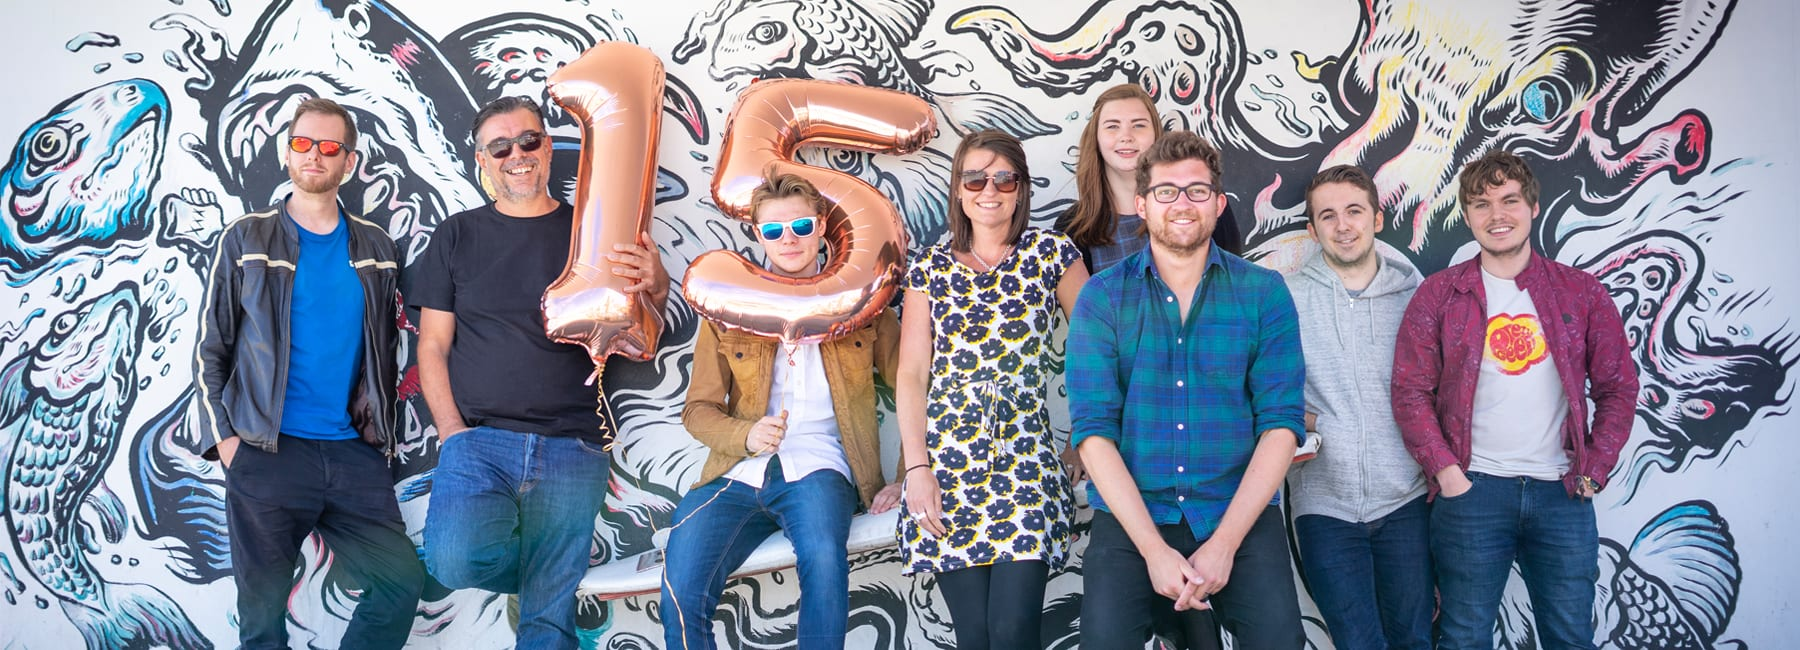 Digital Storm Team standing against a painted mural celebrating their anniversary with ballons